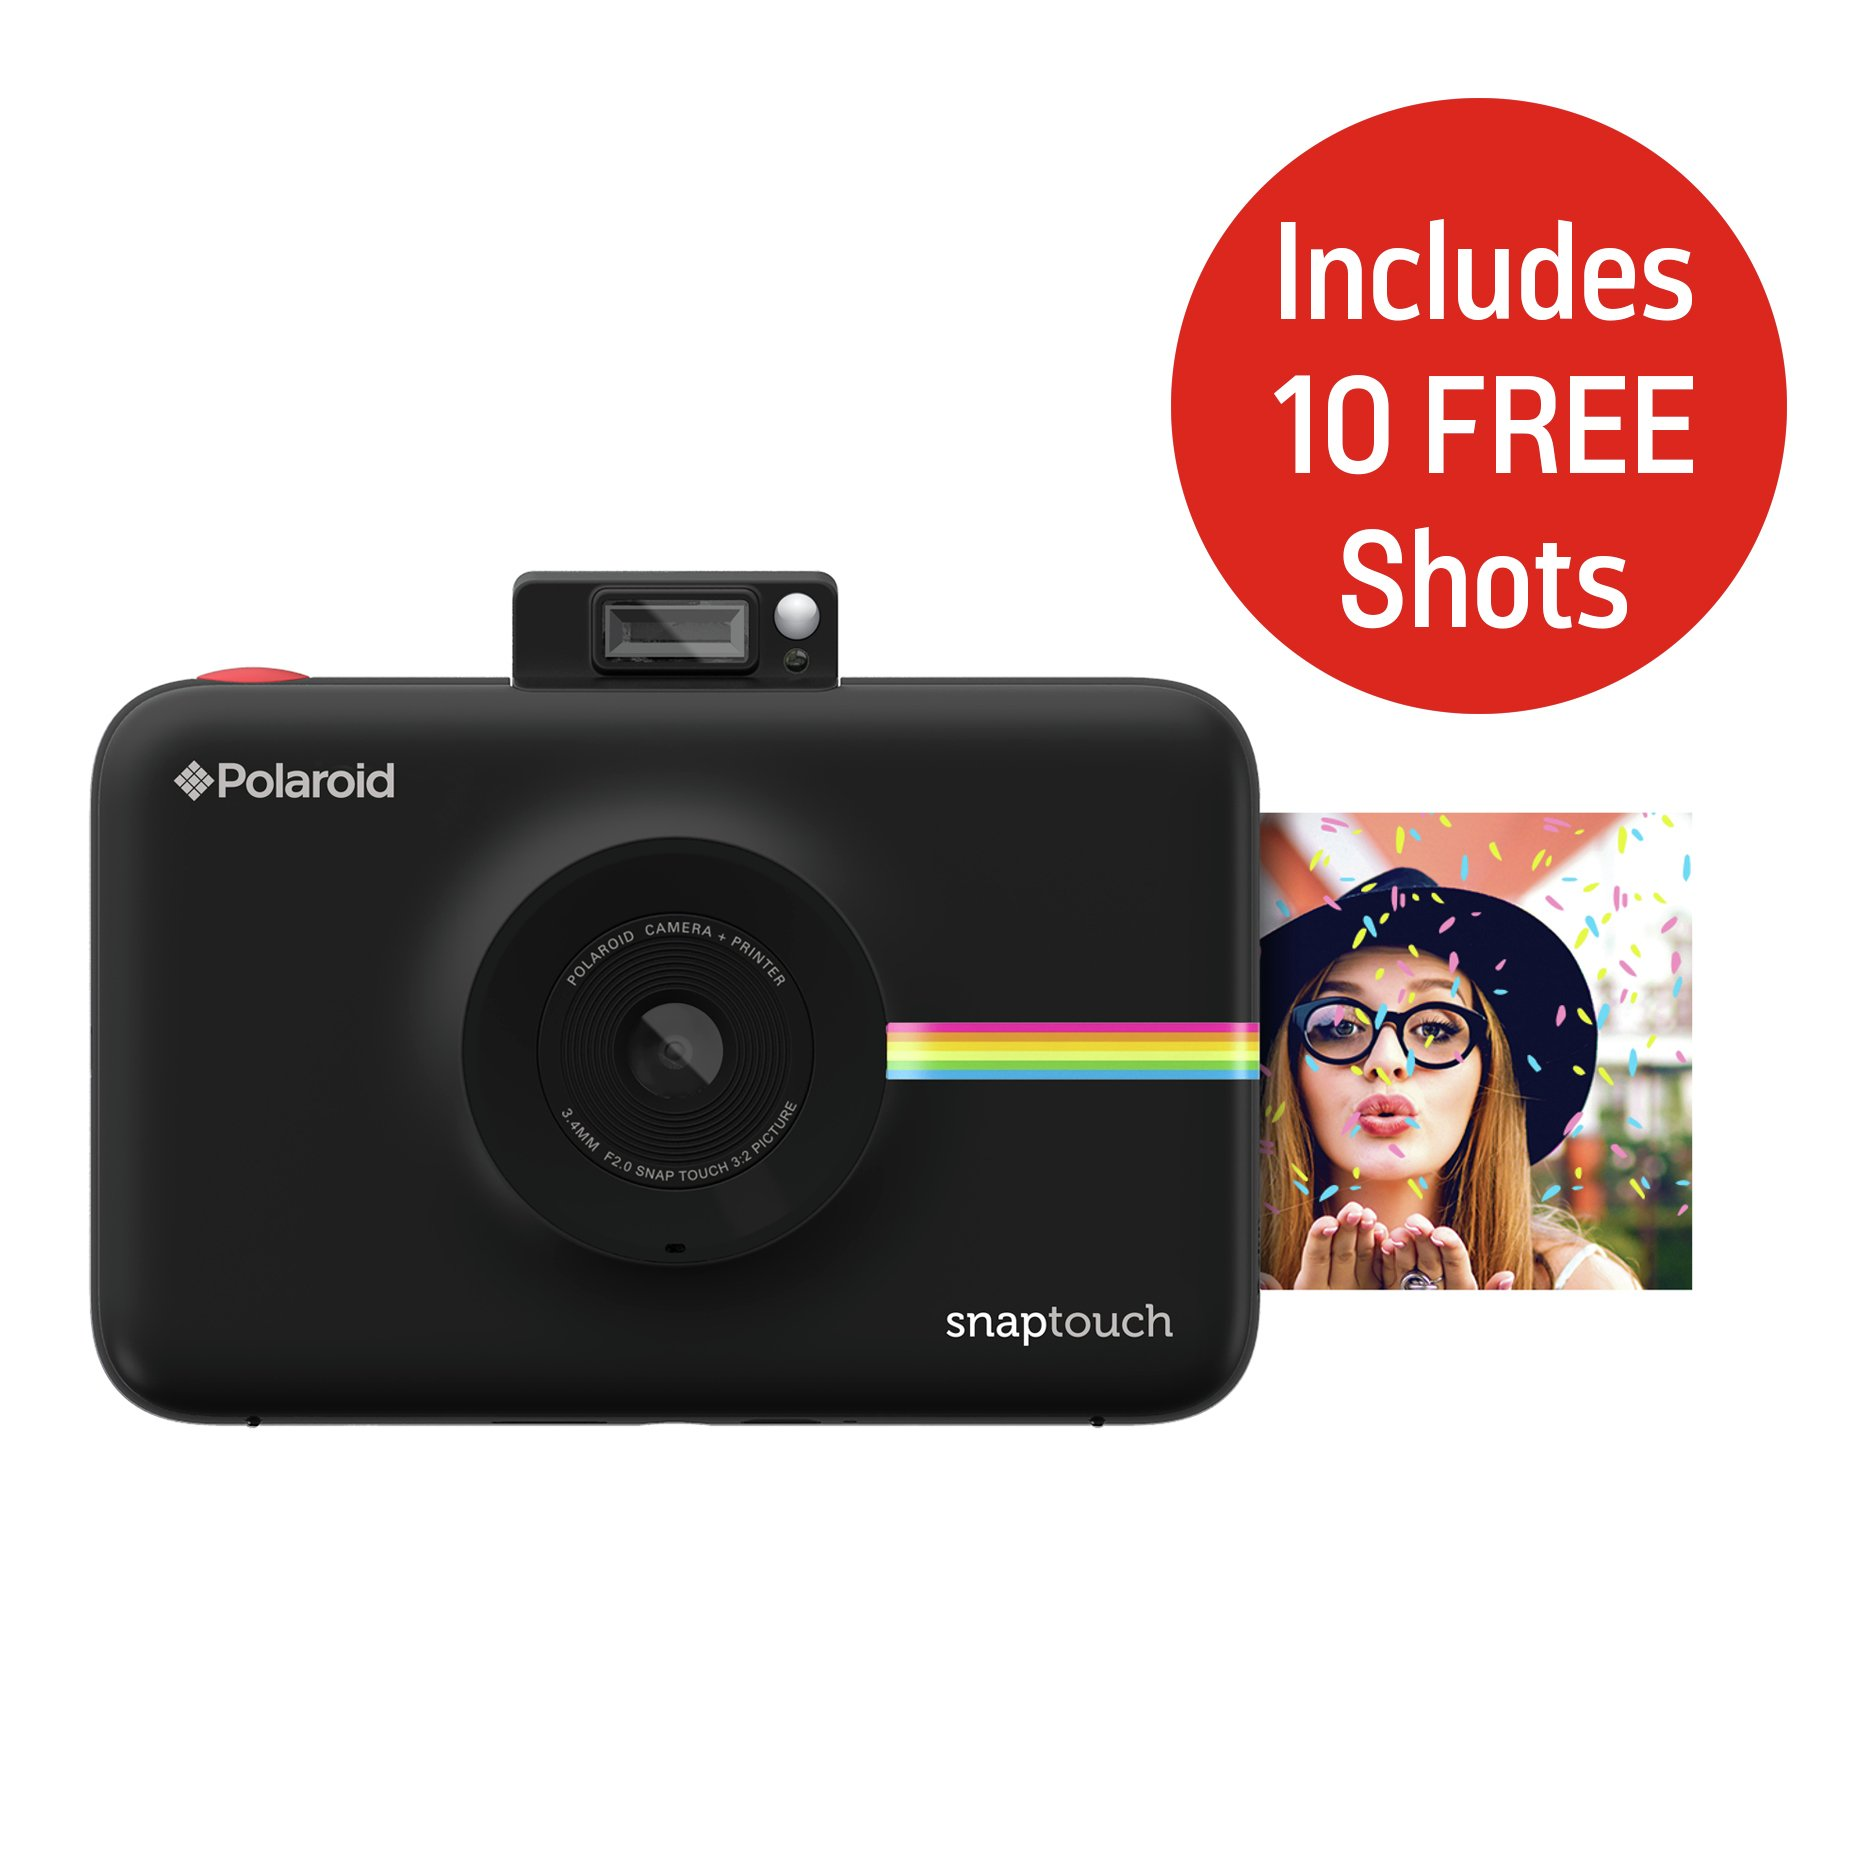 Polaroid SnapTouch Instant Print Camera with LCD Screen